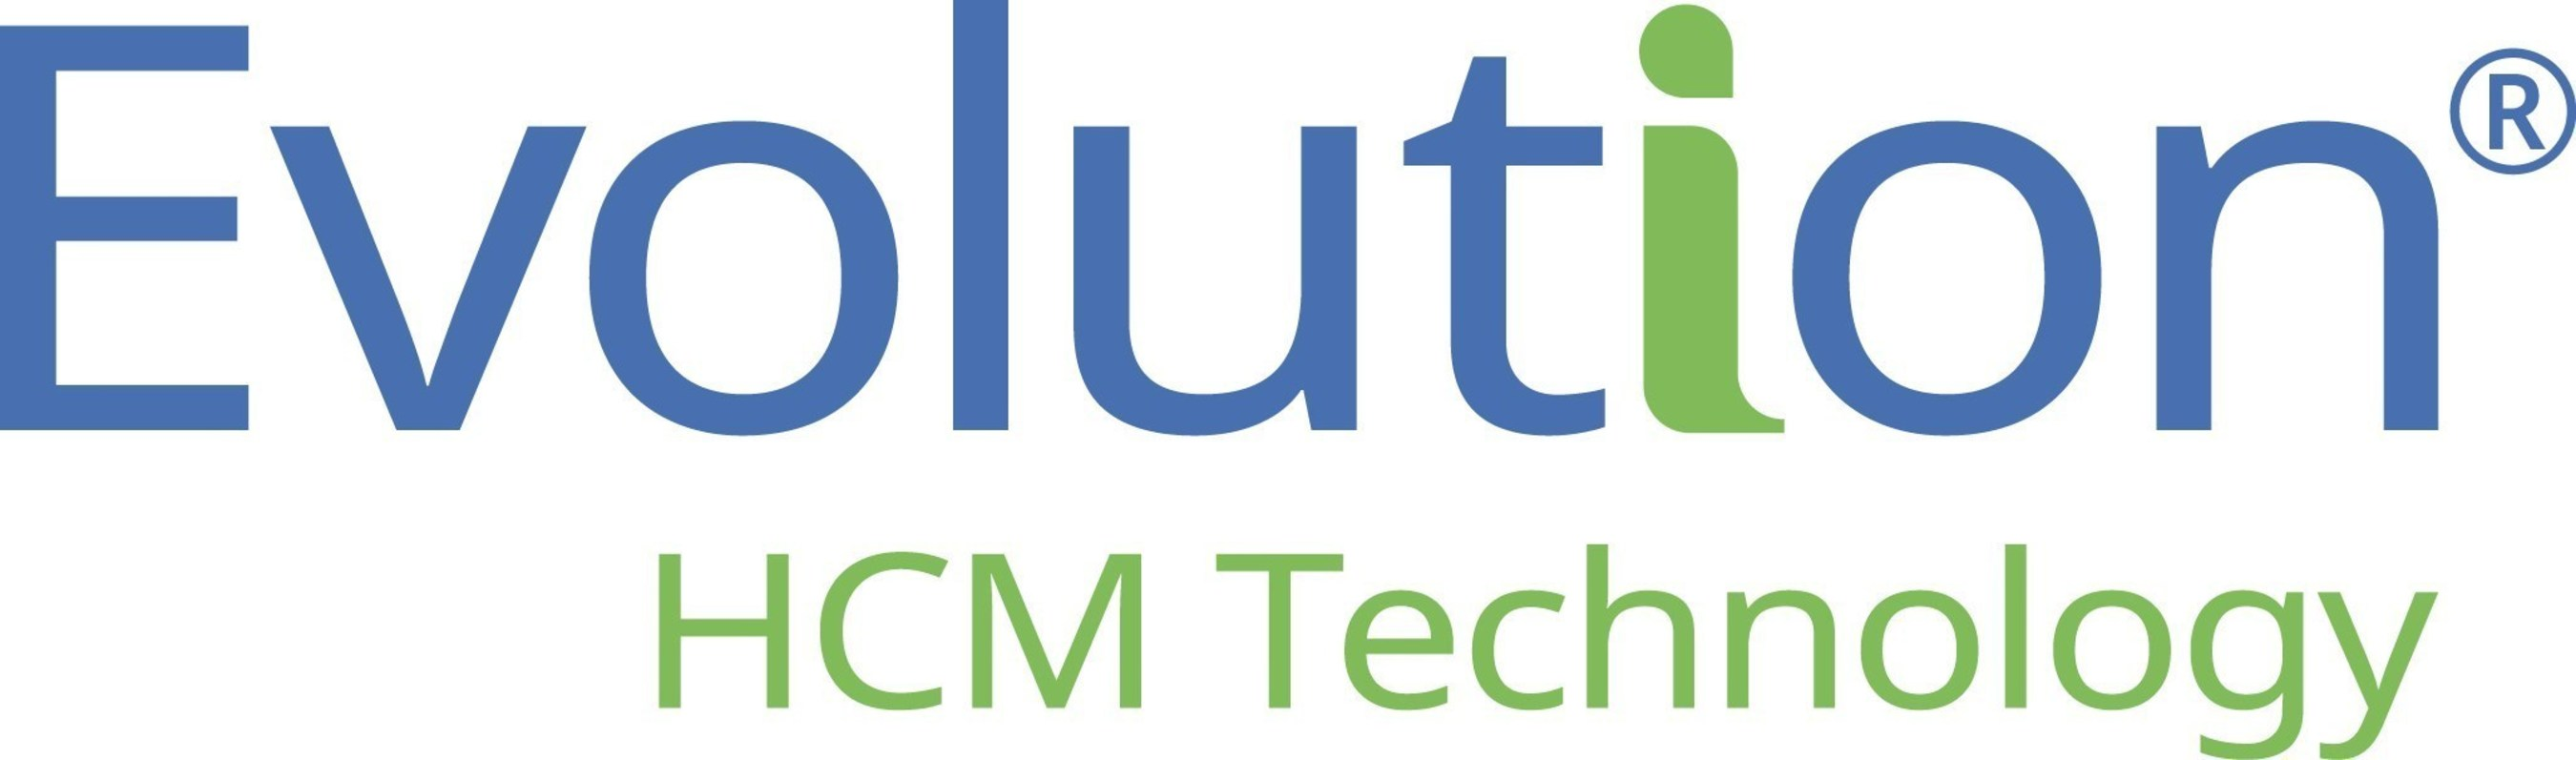 Evolution HCM Technology Announces new Integration and Partnership with eBenefits Network